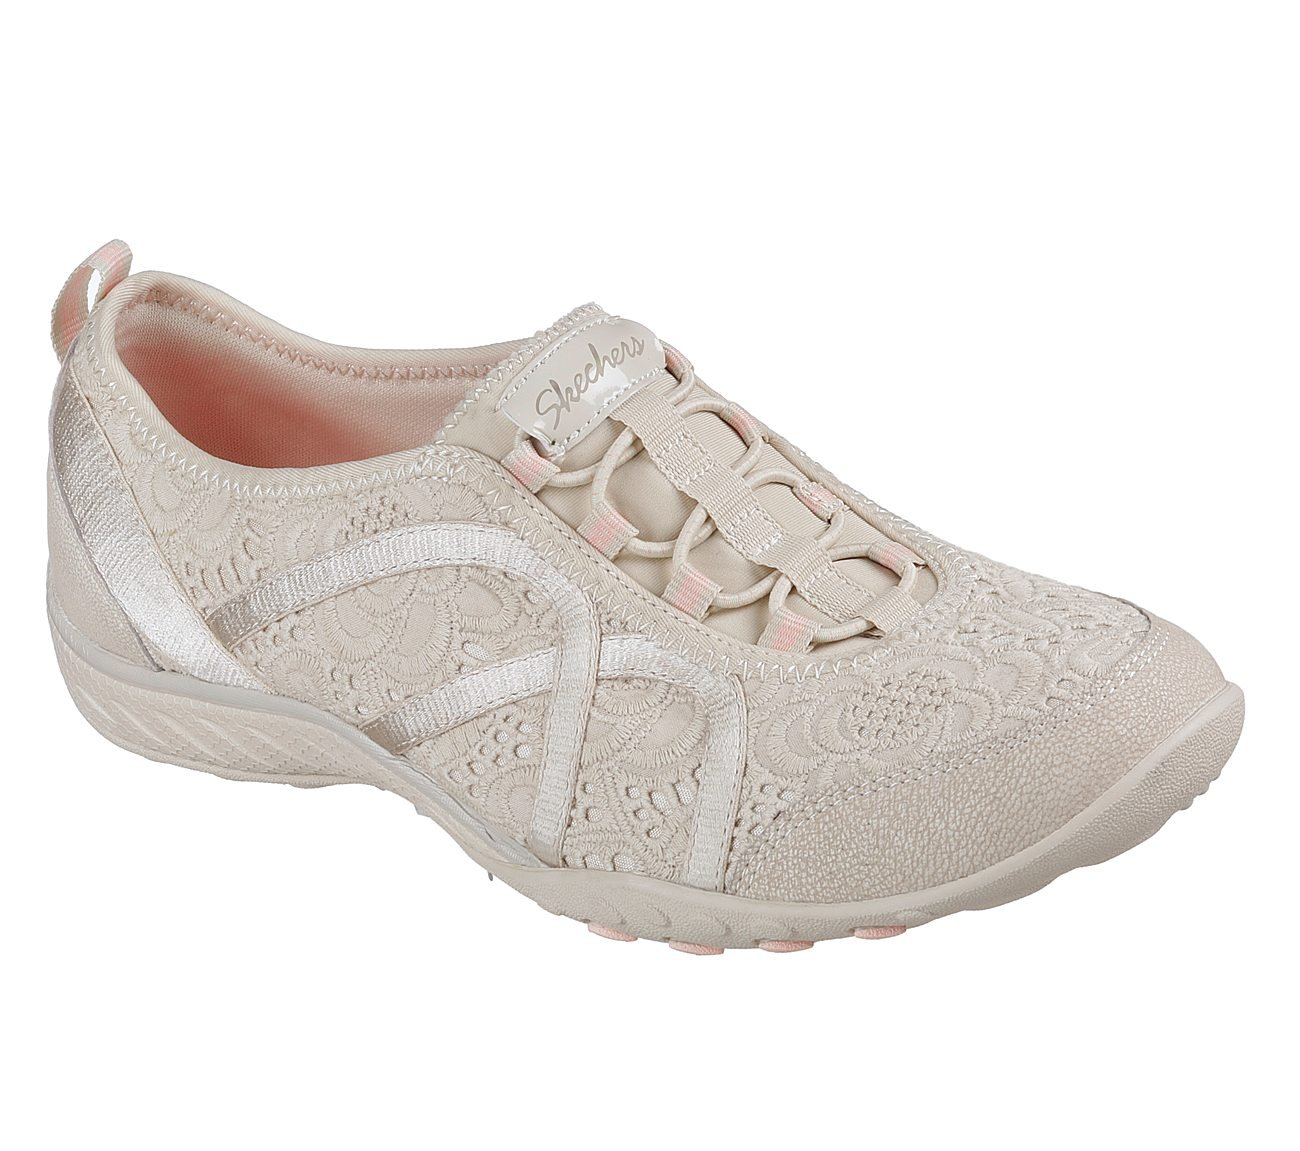 Skechers Relaxed Fit Breathe Easy Elegant Glow Women's Fashion Sneakers, Taupe Eyelet Mesh, 9.5 US